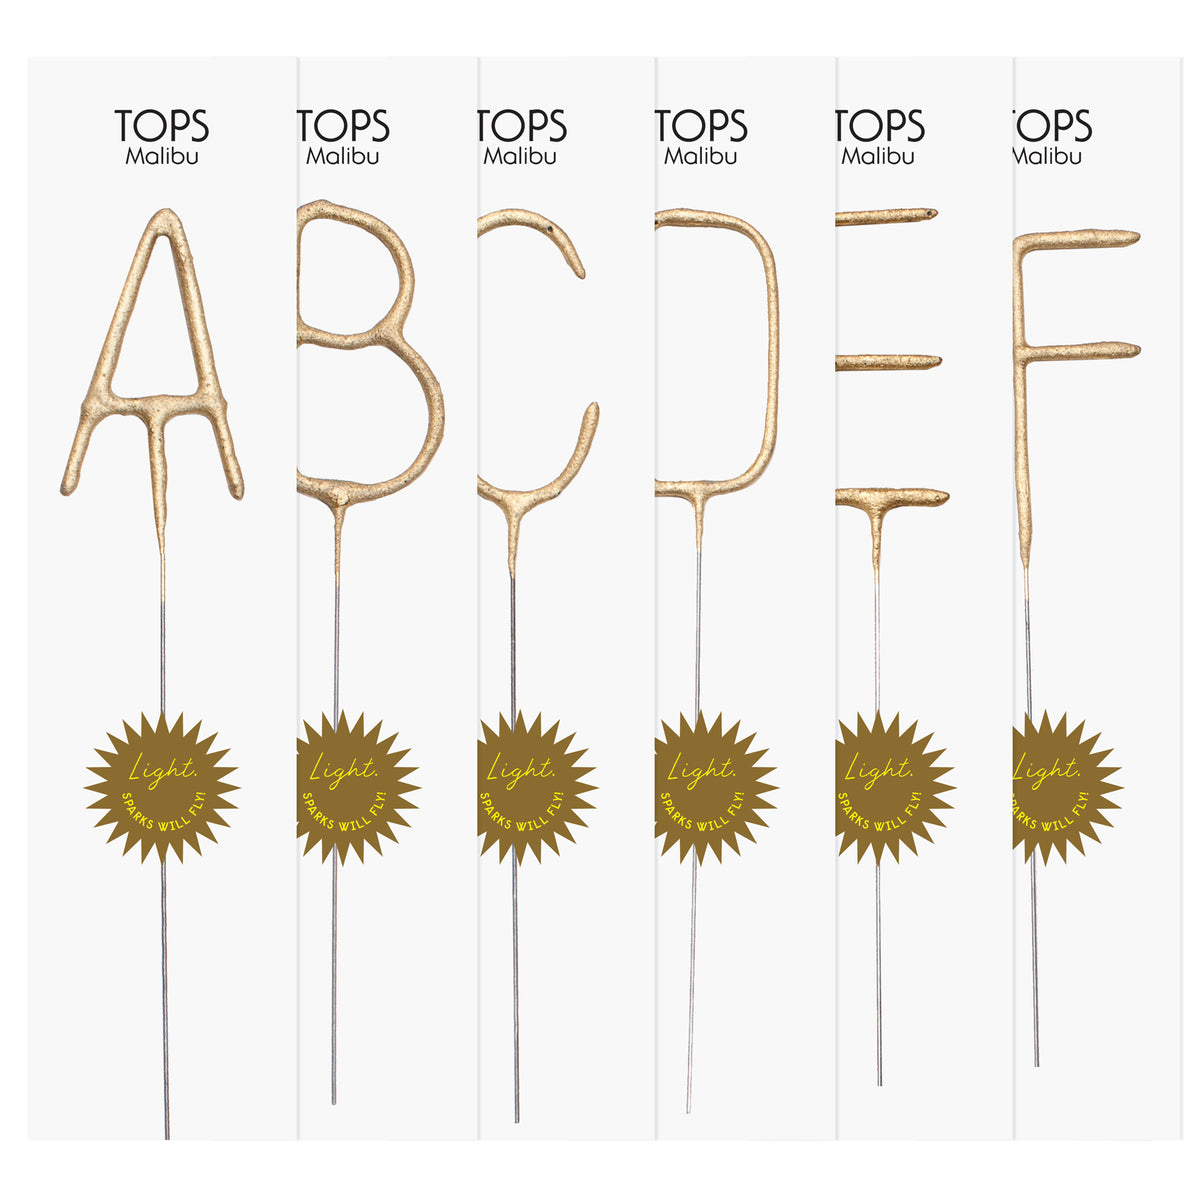 Big Golden Sparkler Wand Letter